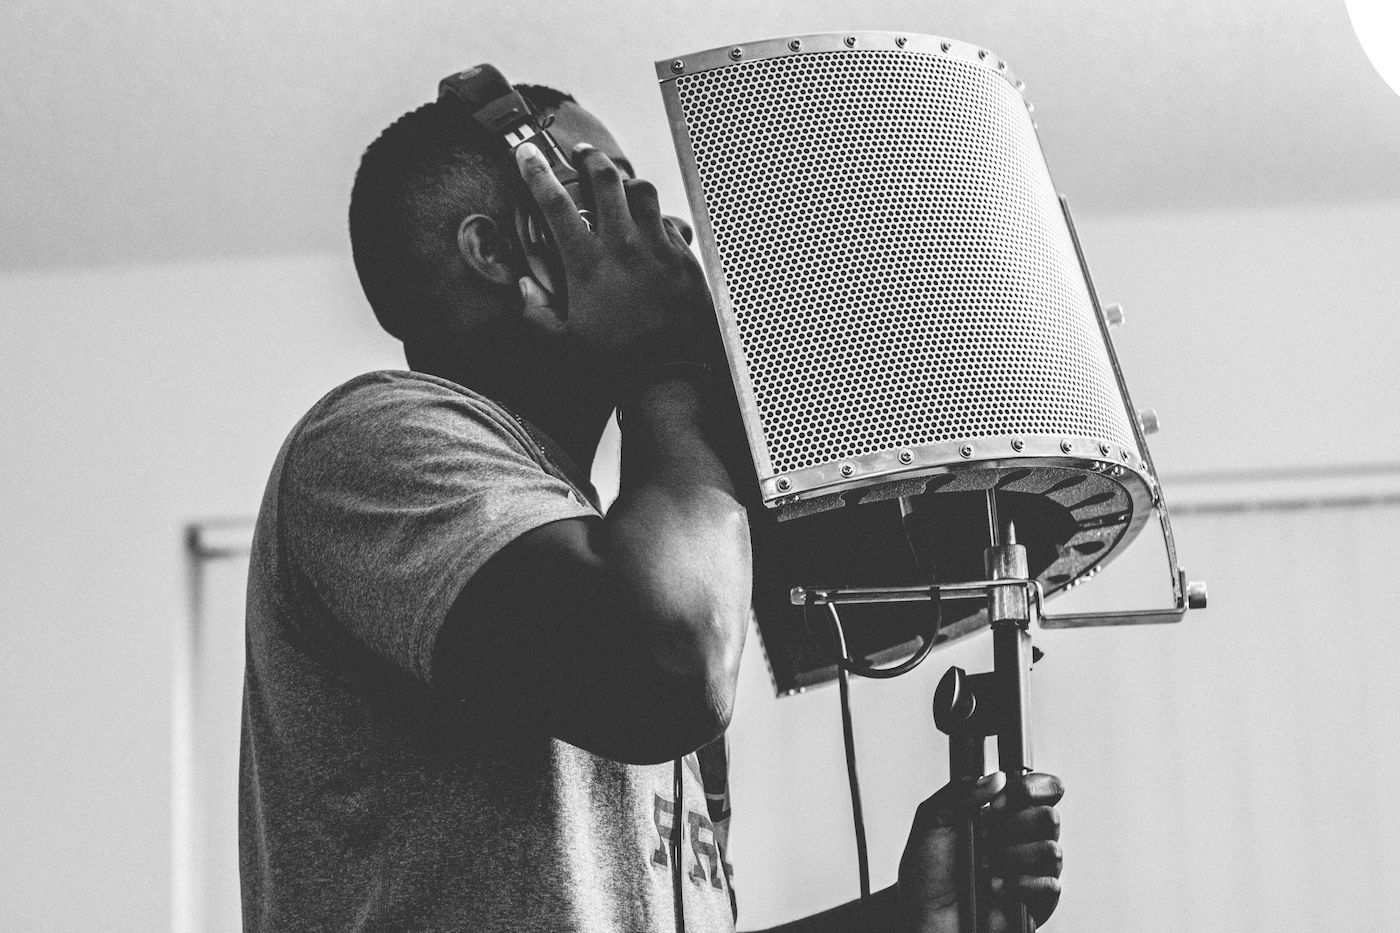 Man Recording for Music Collaboration